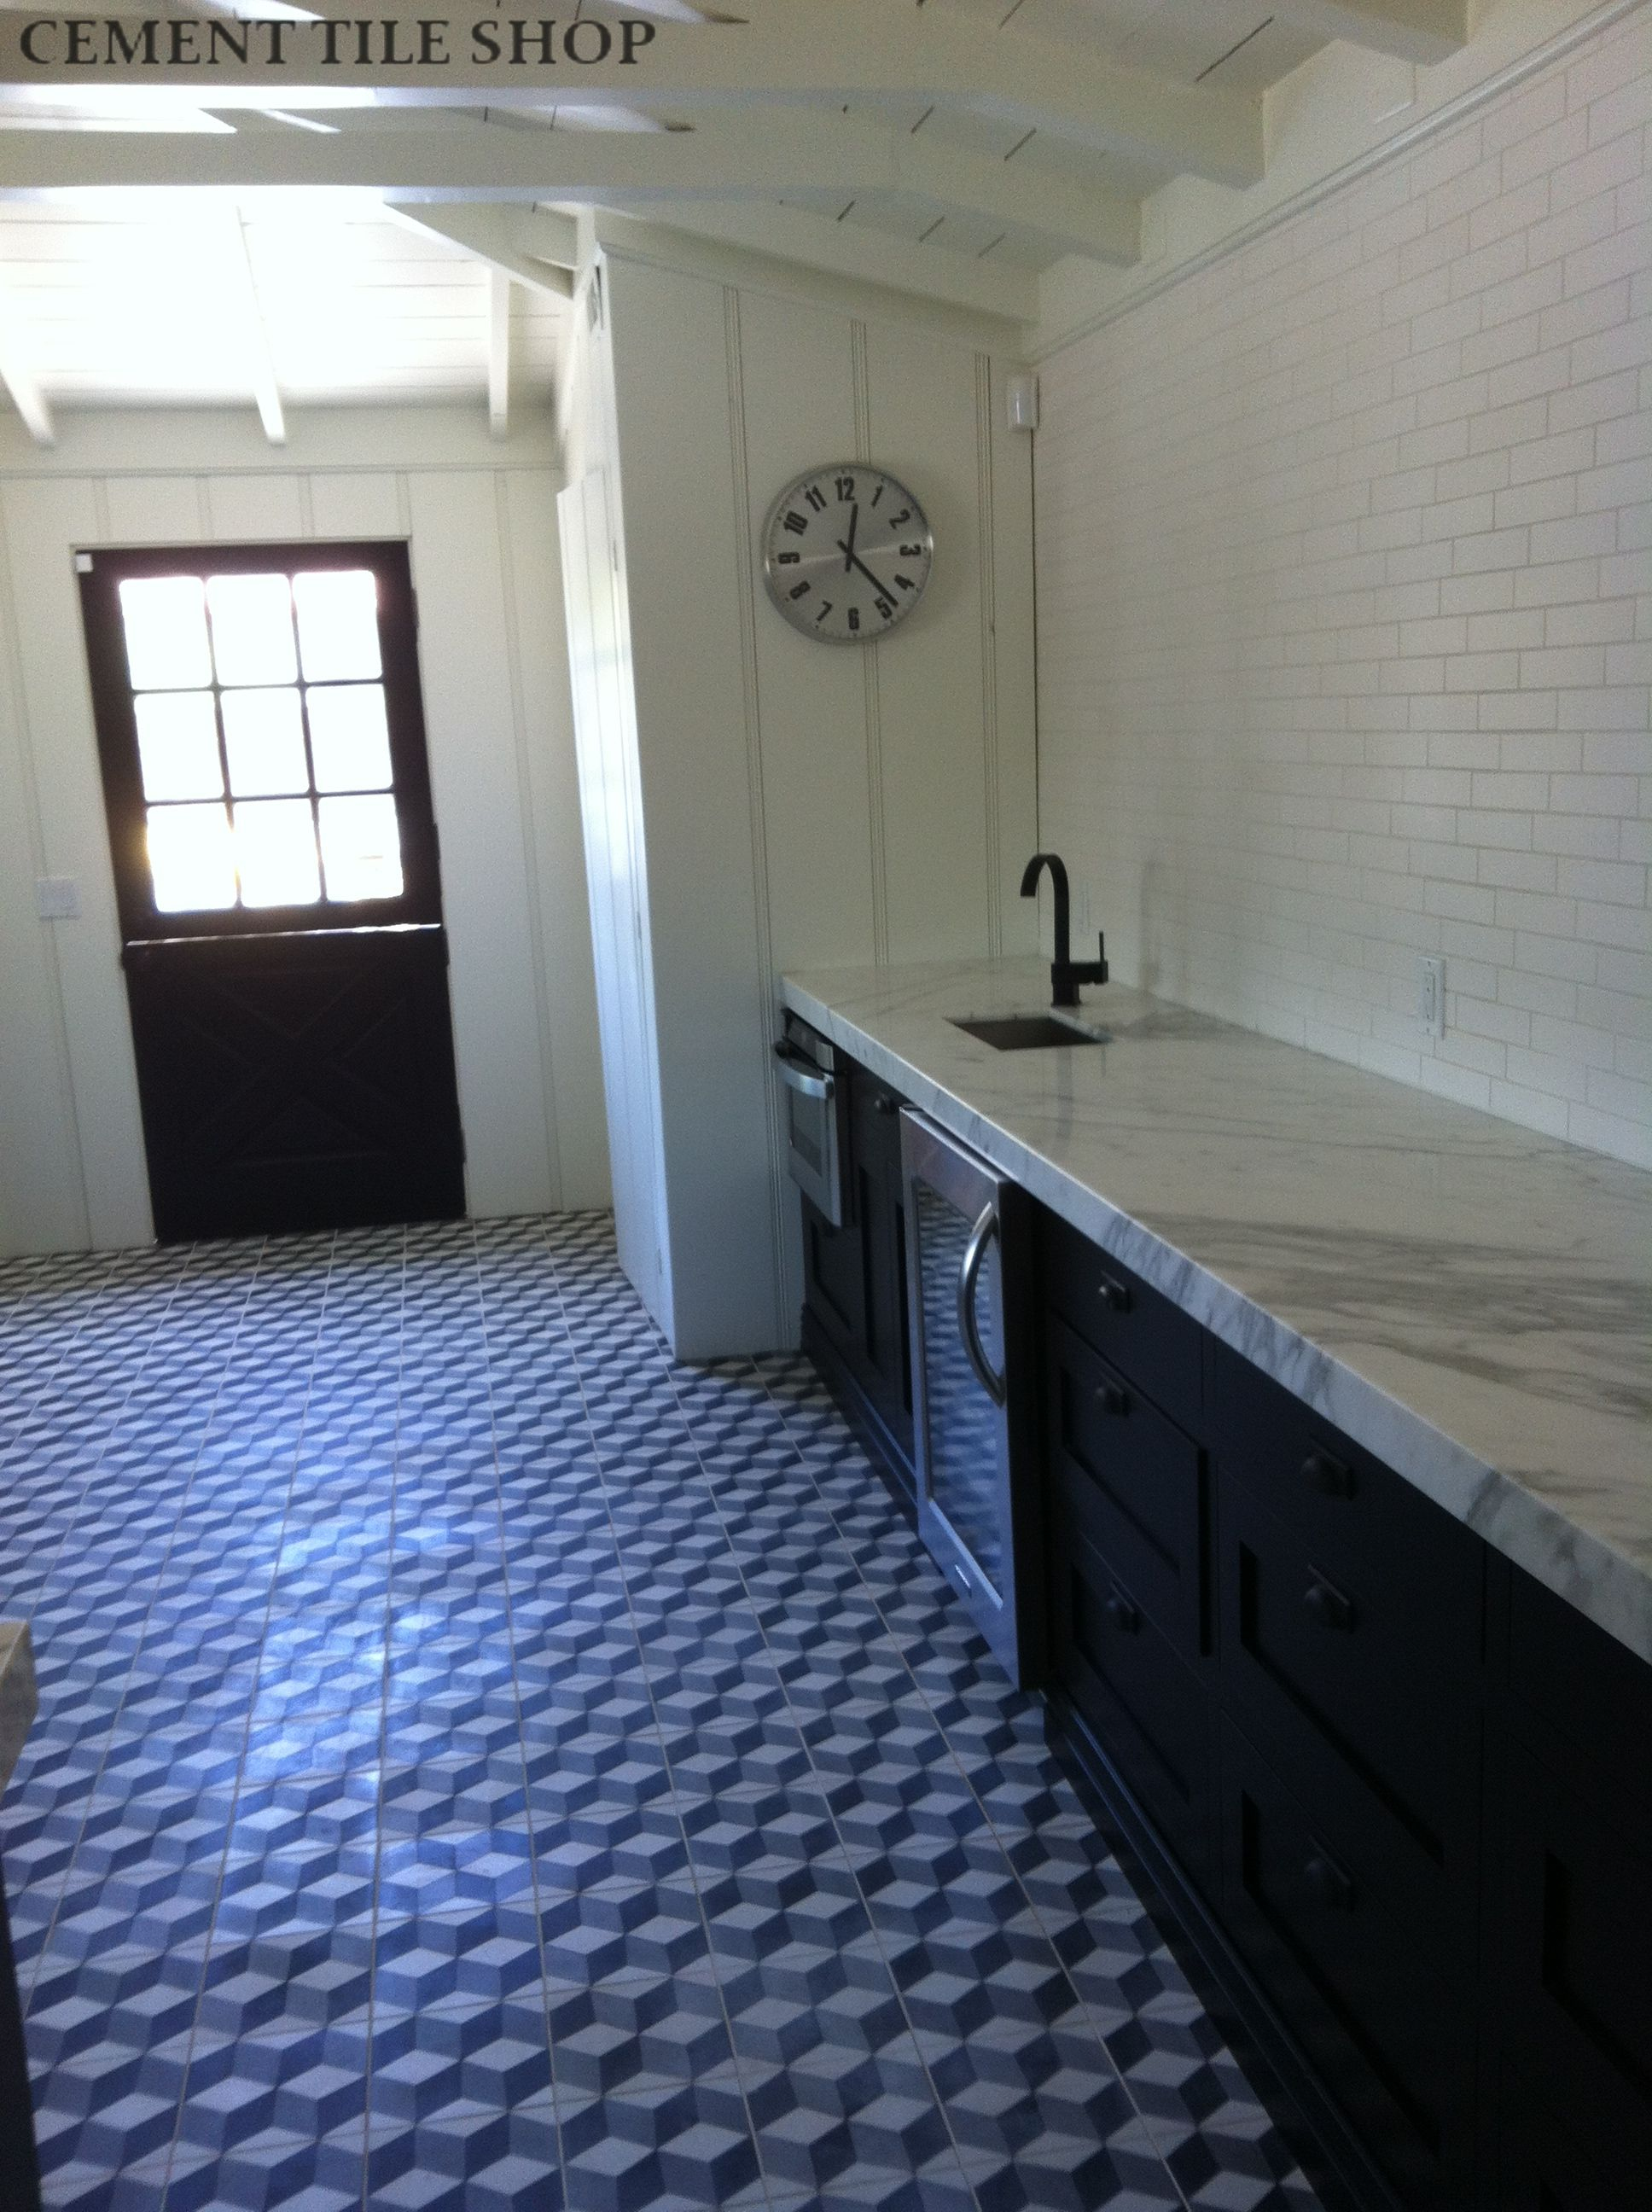 harlequin cement tile | Cement Tile Shop Blog